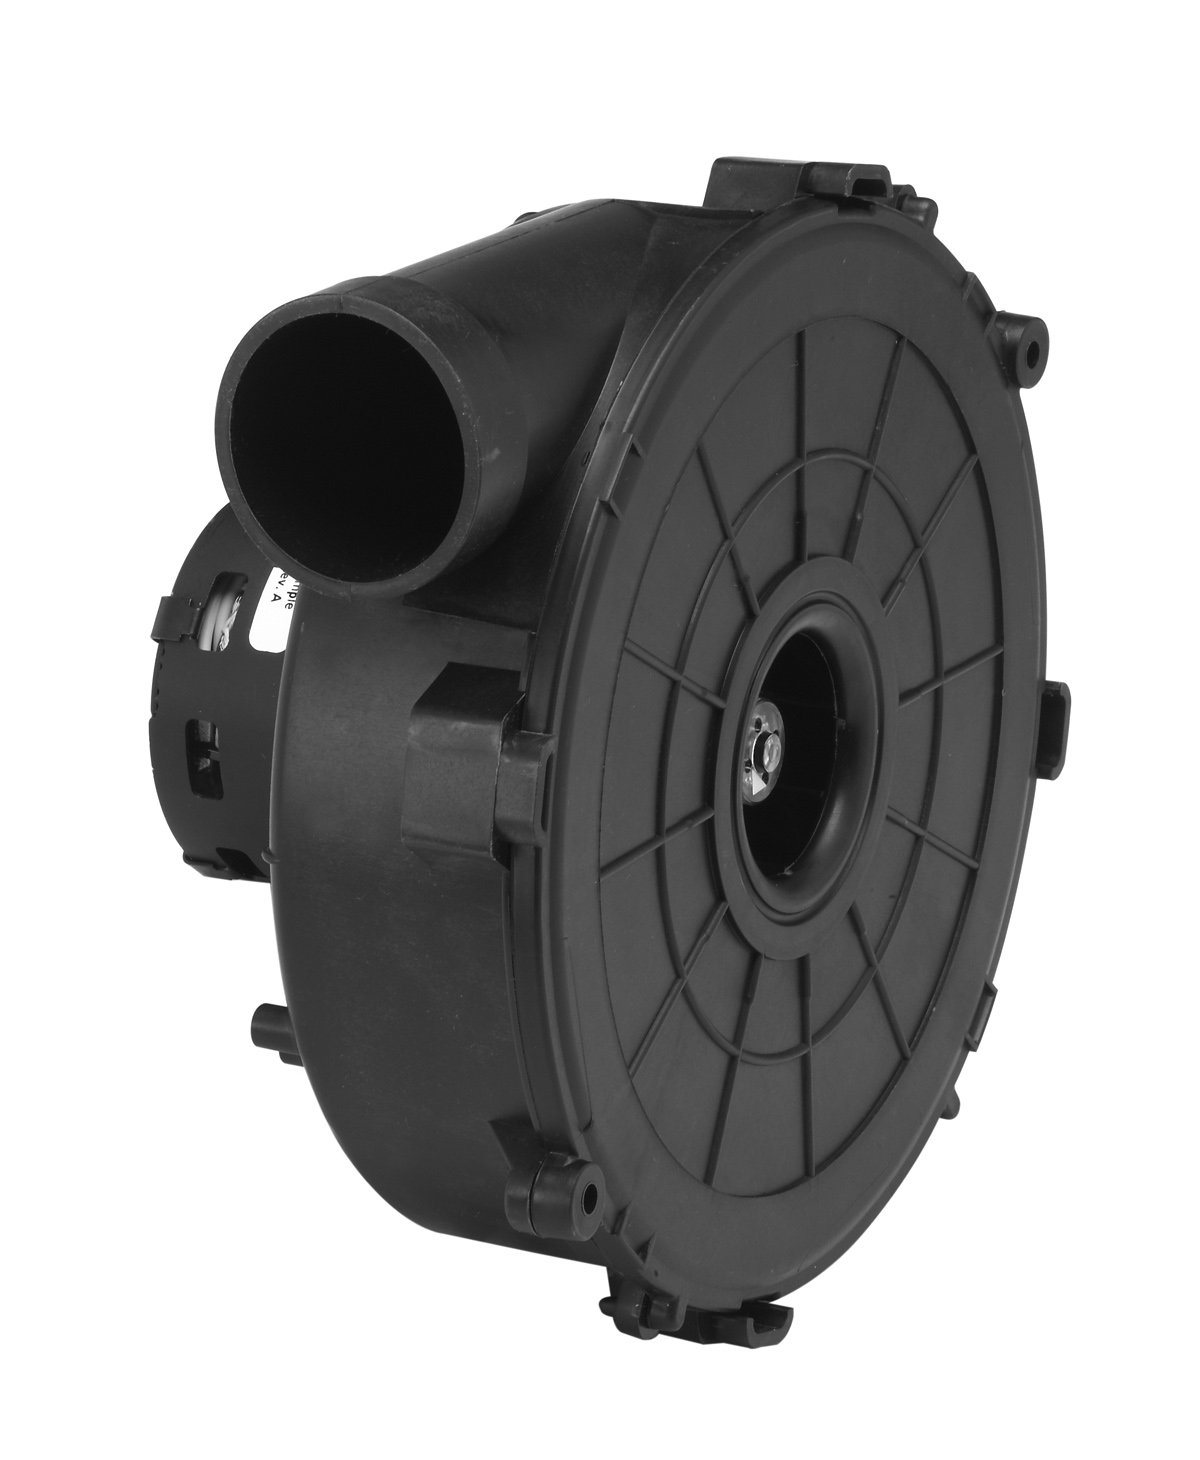 Fasco A209 3.3'' Frame Permanent Split Capacitor OEM Replacement Specific Purpose Blower with Ball Bearing, 1/20HP, 3200/2800rpm, 115V, 60Hz, 0.8 amps